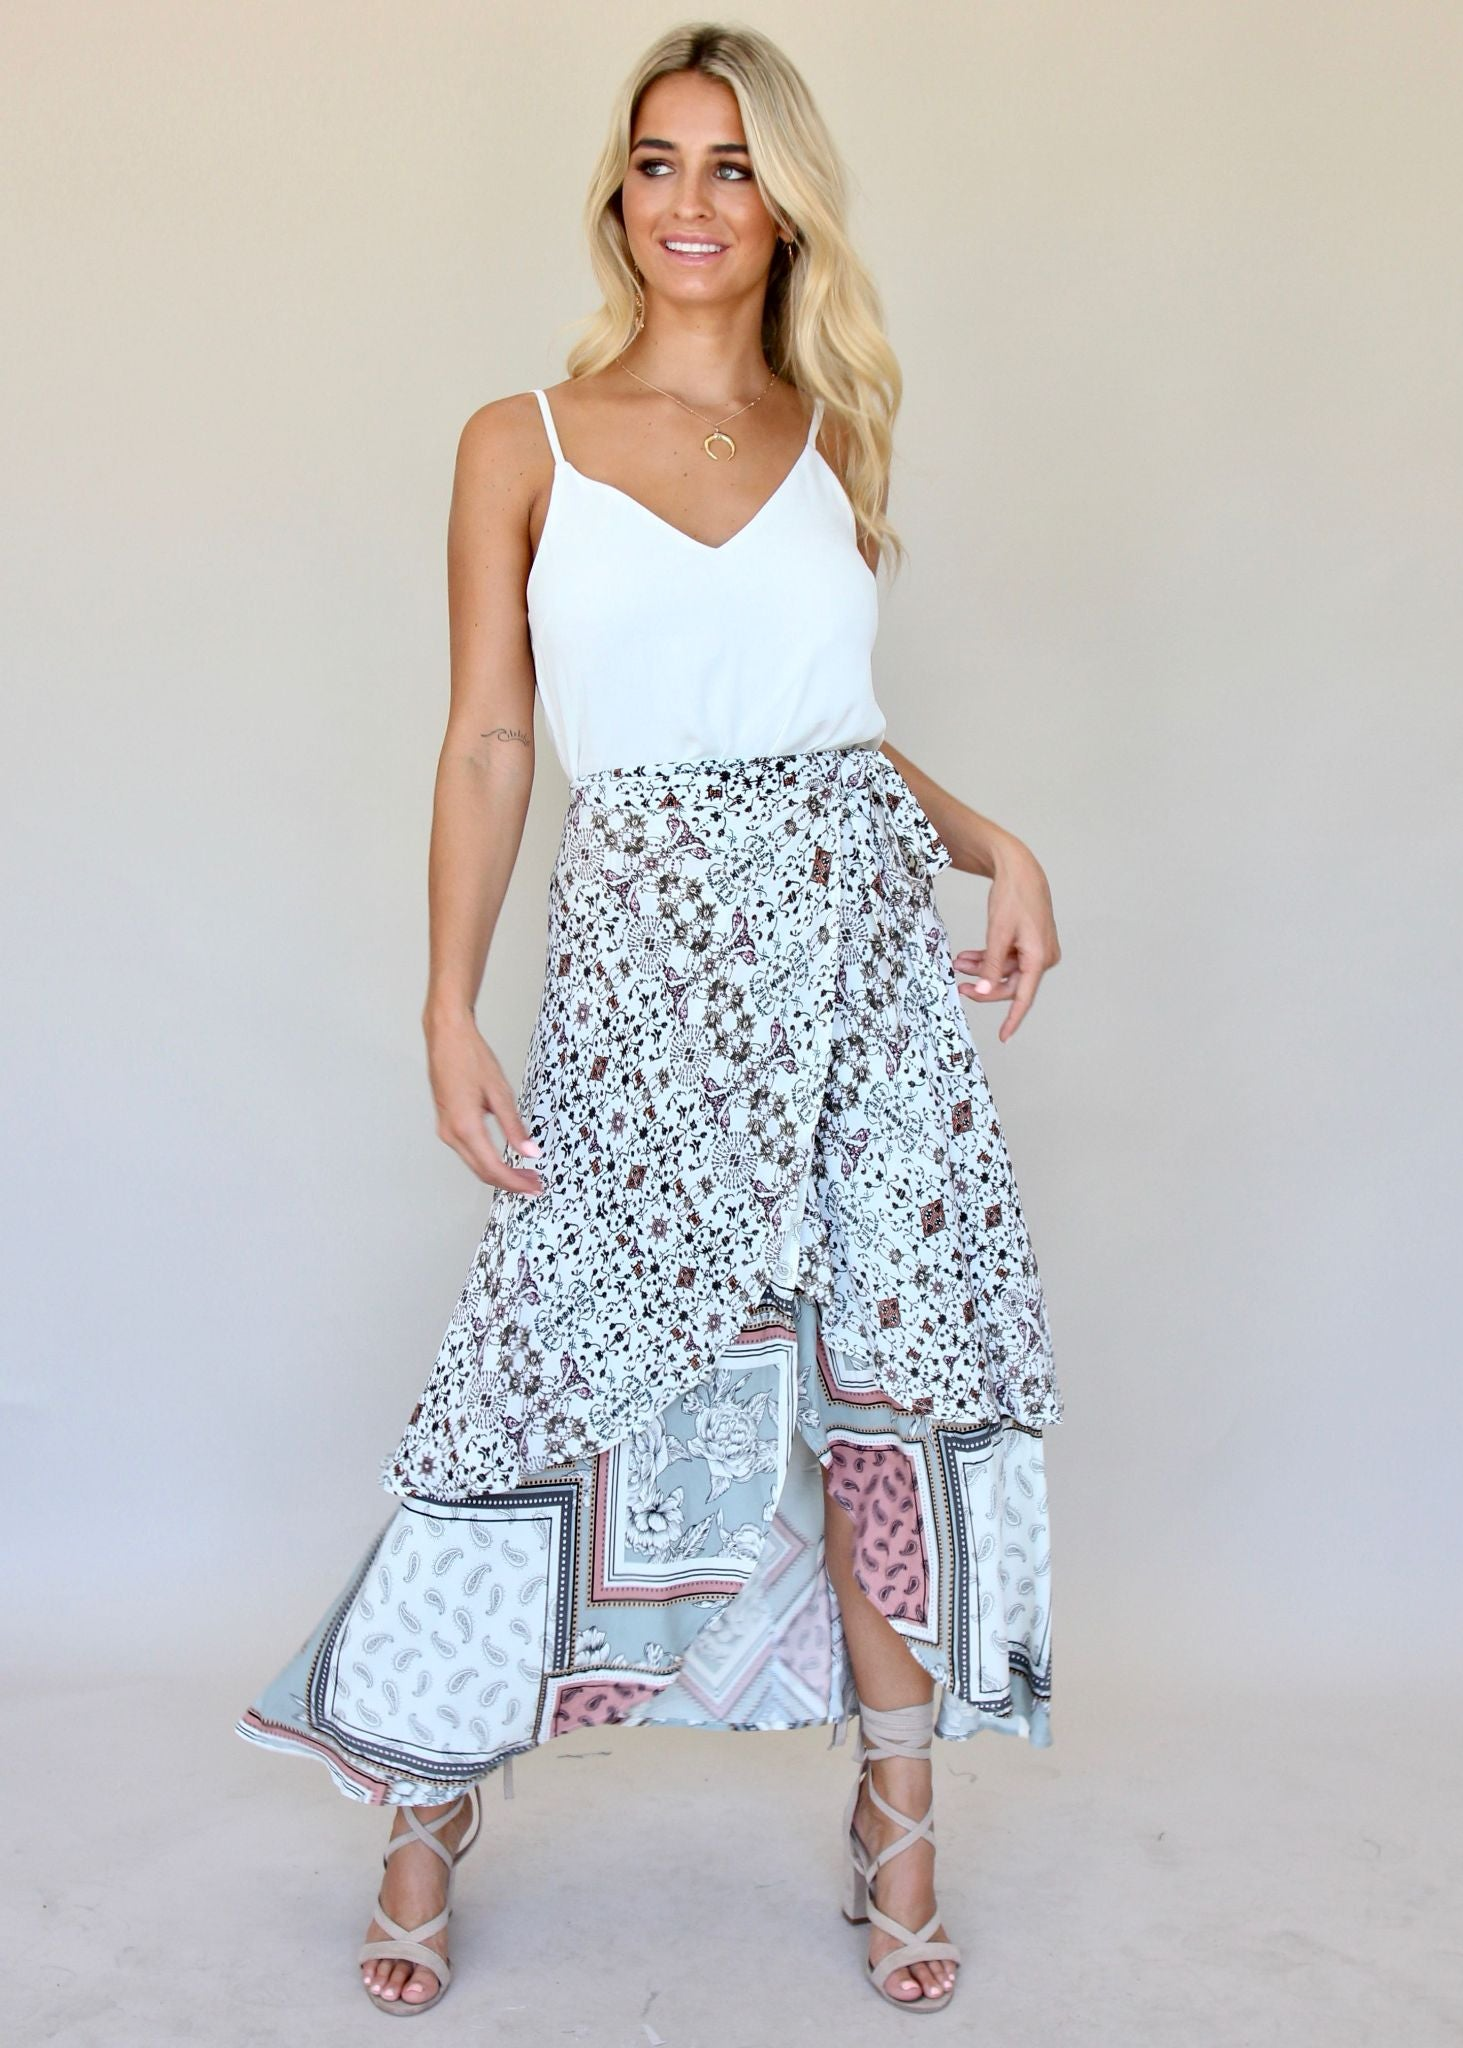 Tigeress Wrap Skirt - Aztec